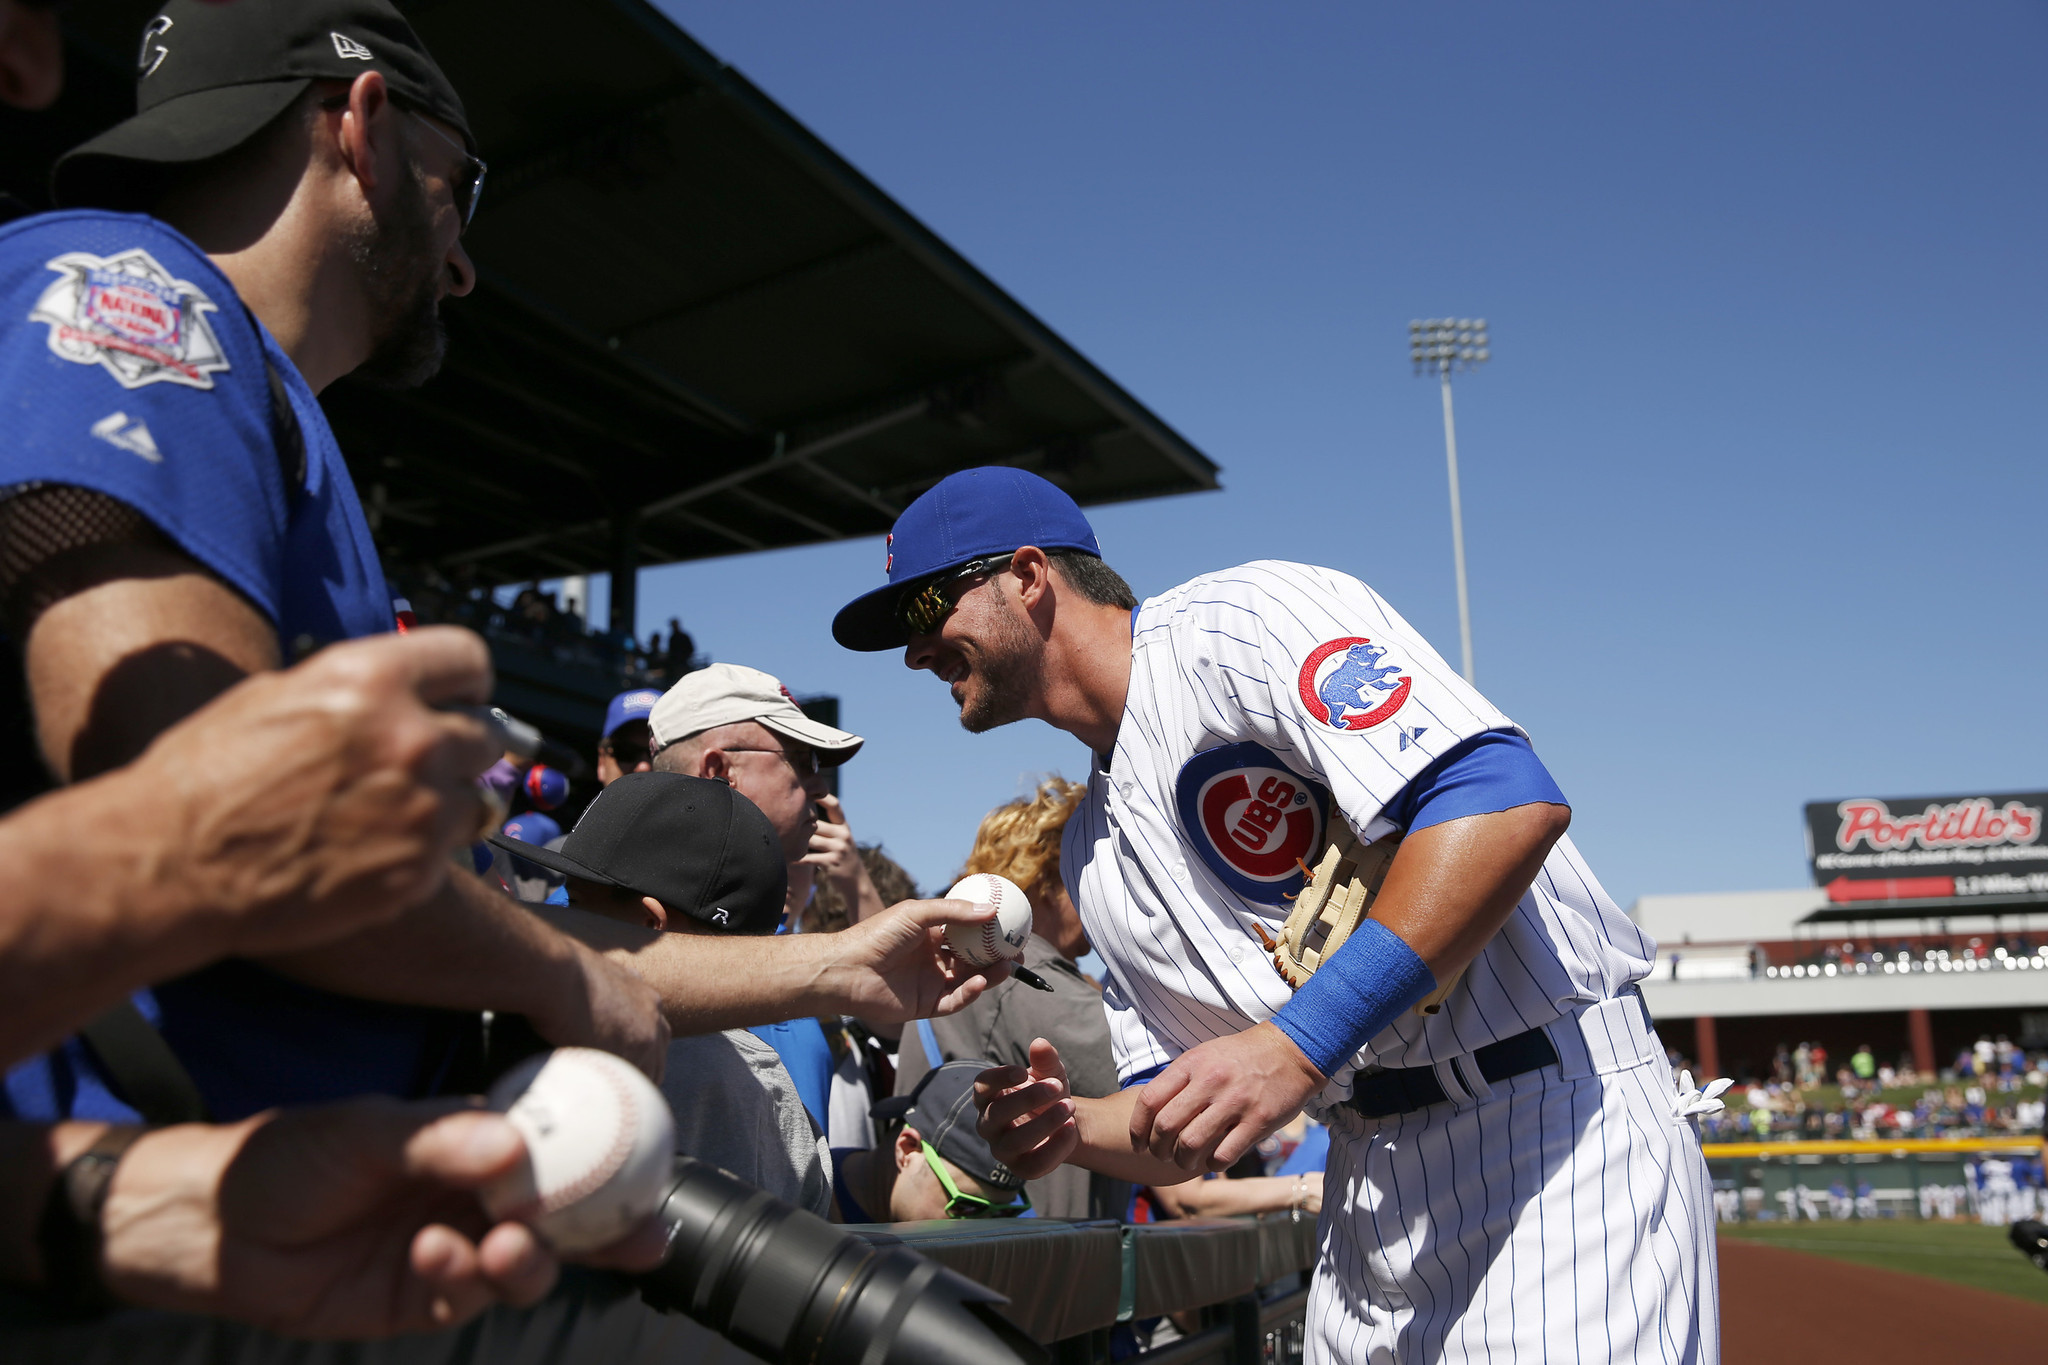 Ct-cubs-spring-training-broadcasts-20160127